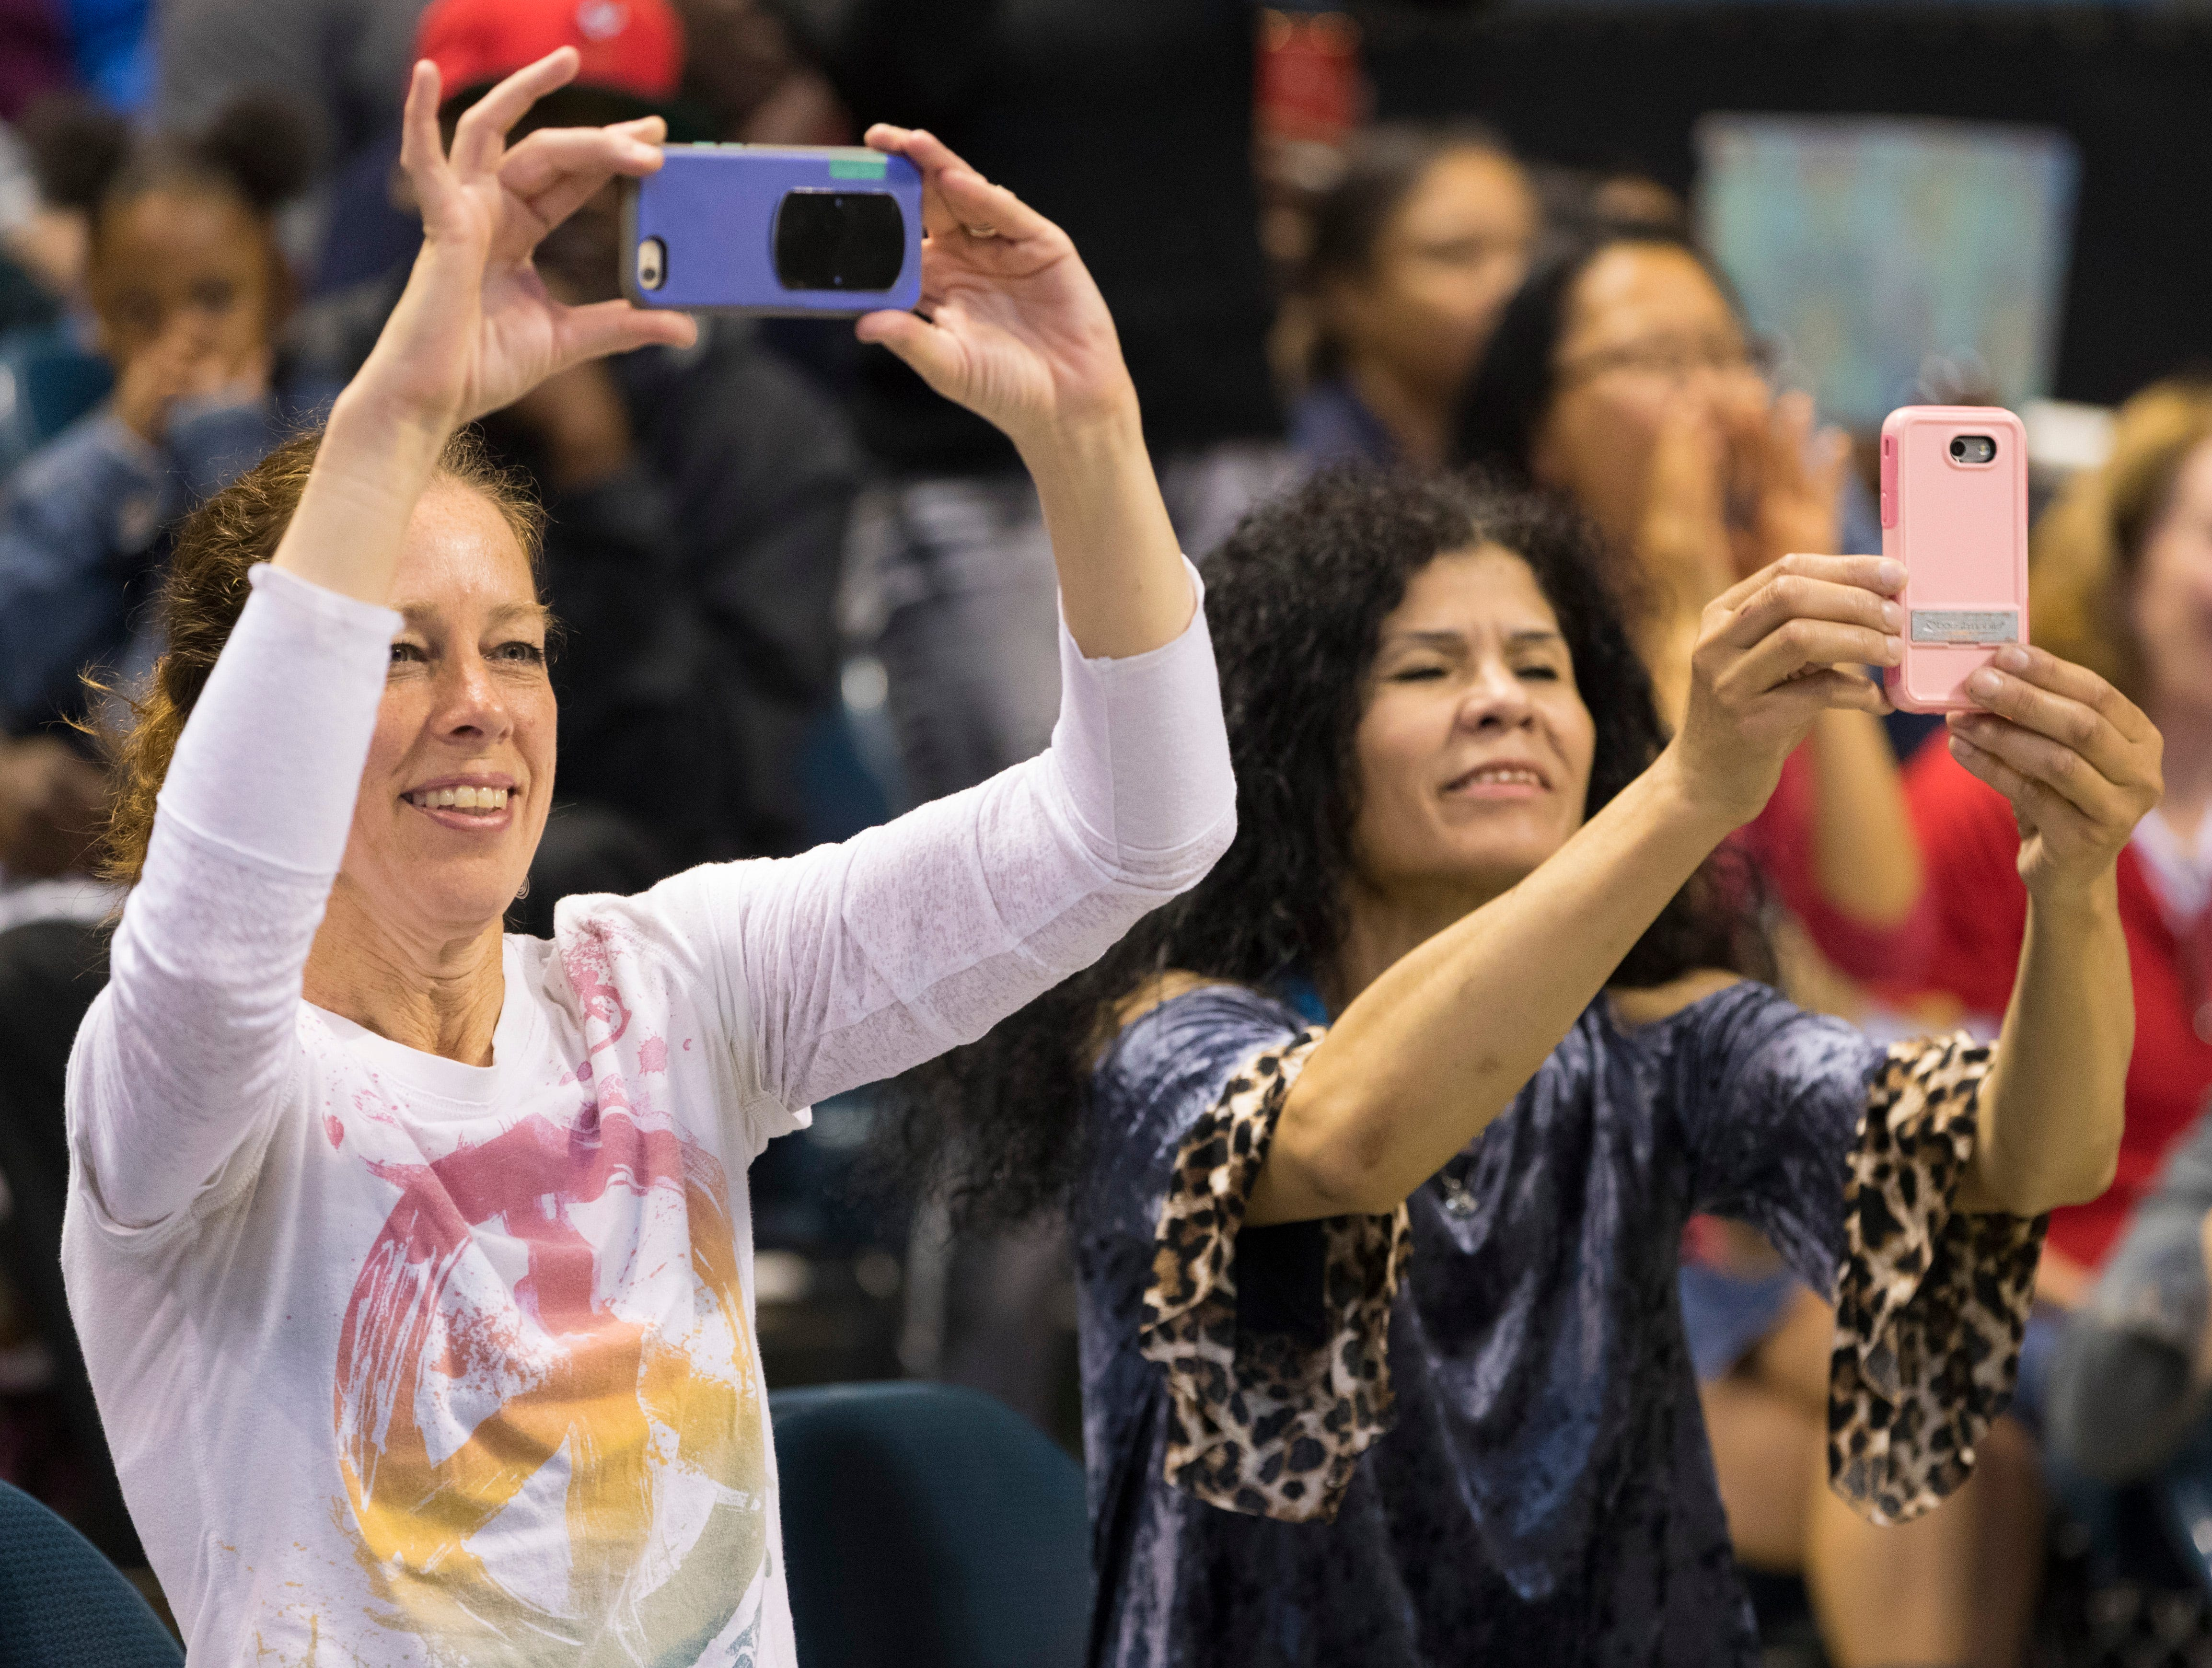 2018: Spectators make photos during the 12th annual Danceworks Mad Hot Ballroom and Tap Competition at the BMO Harris Bradley Center.